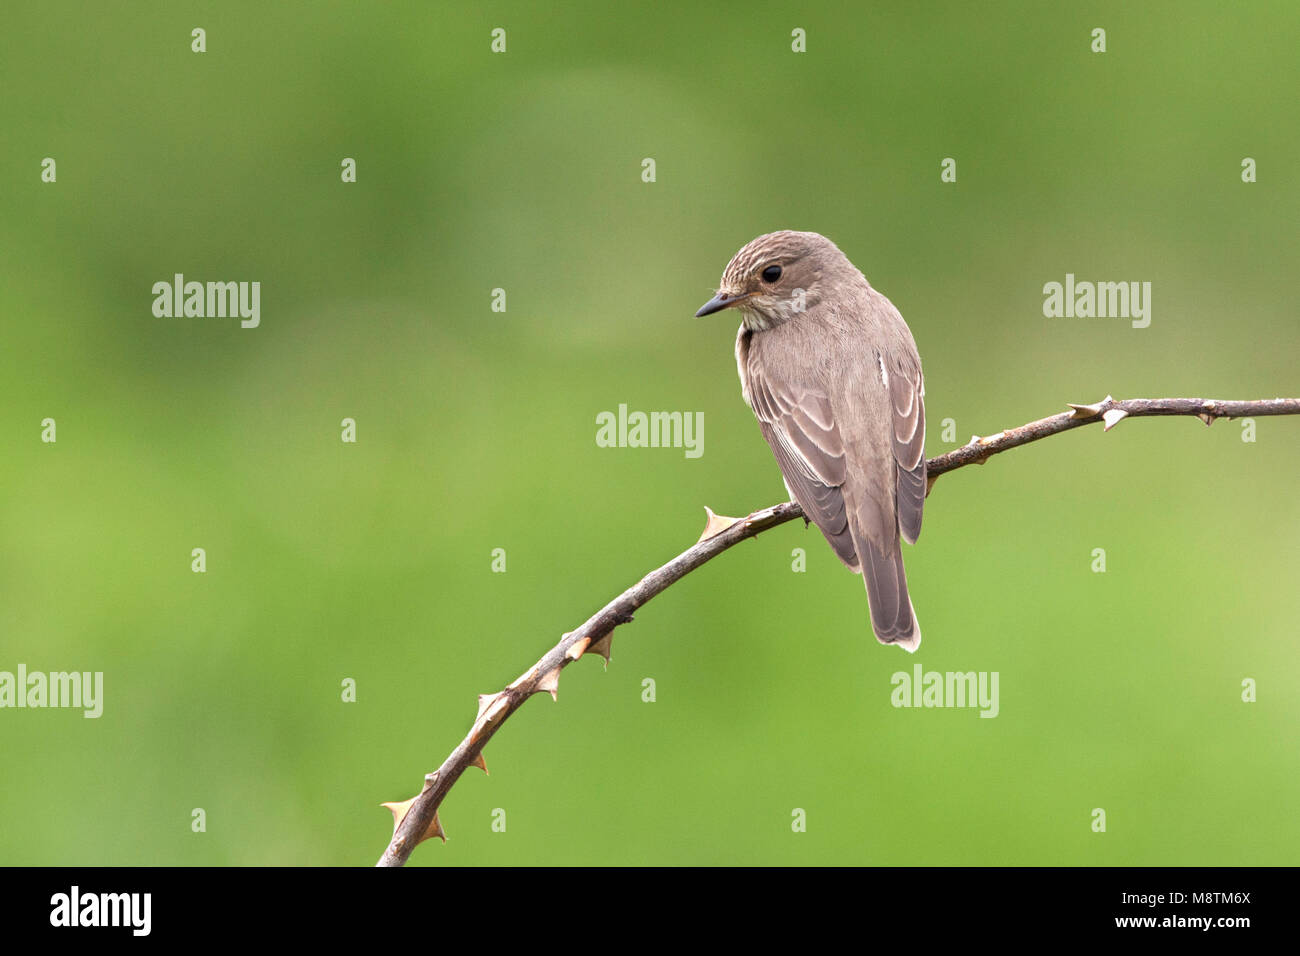 Grauwe Vliegenvanger zittend op tak; Spotted Flycatcher perched on branch - Stock Image